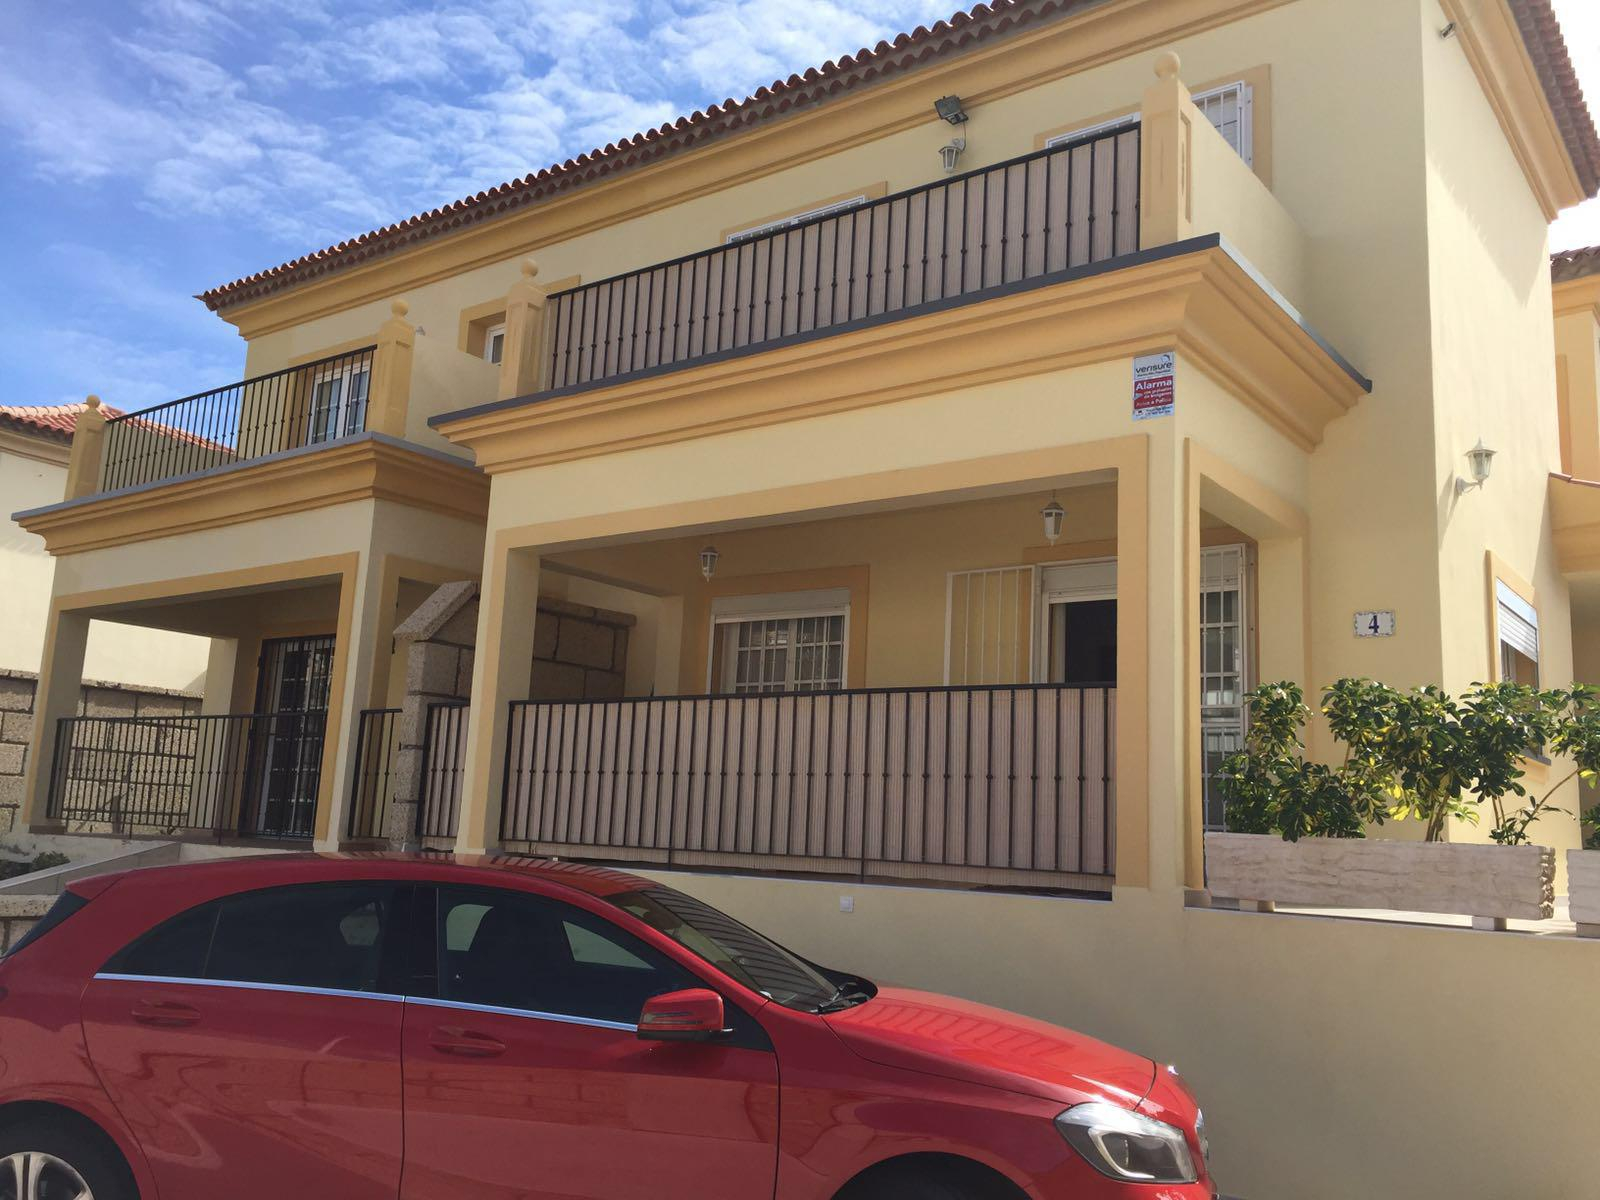 Properties for Sale in Tenerife, Canary Islands, Spain | SylkWayStar Real Estate. Townhouse 5 bedrooms Madroñal. Image-25135